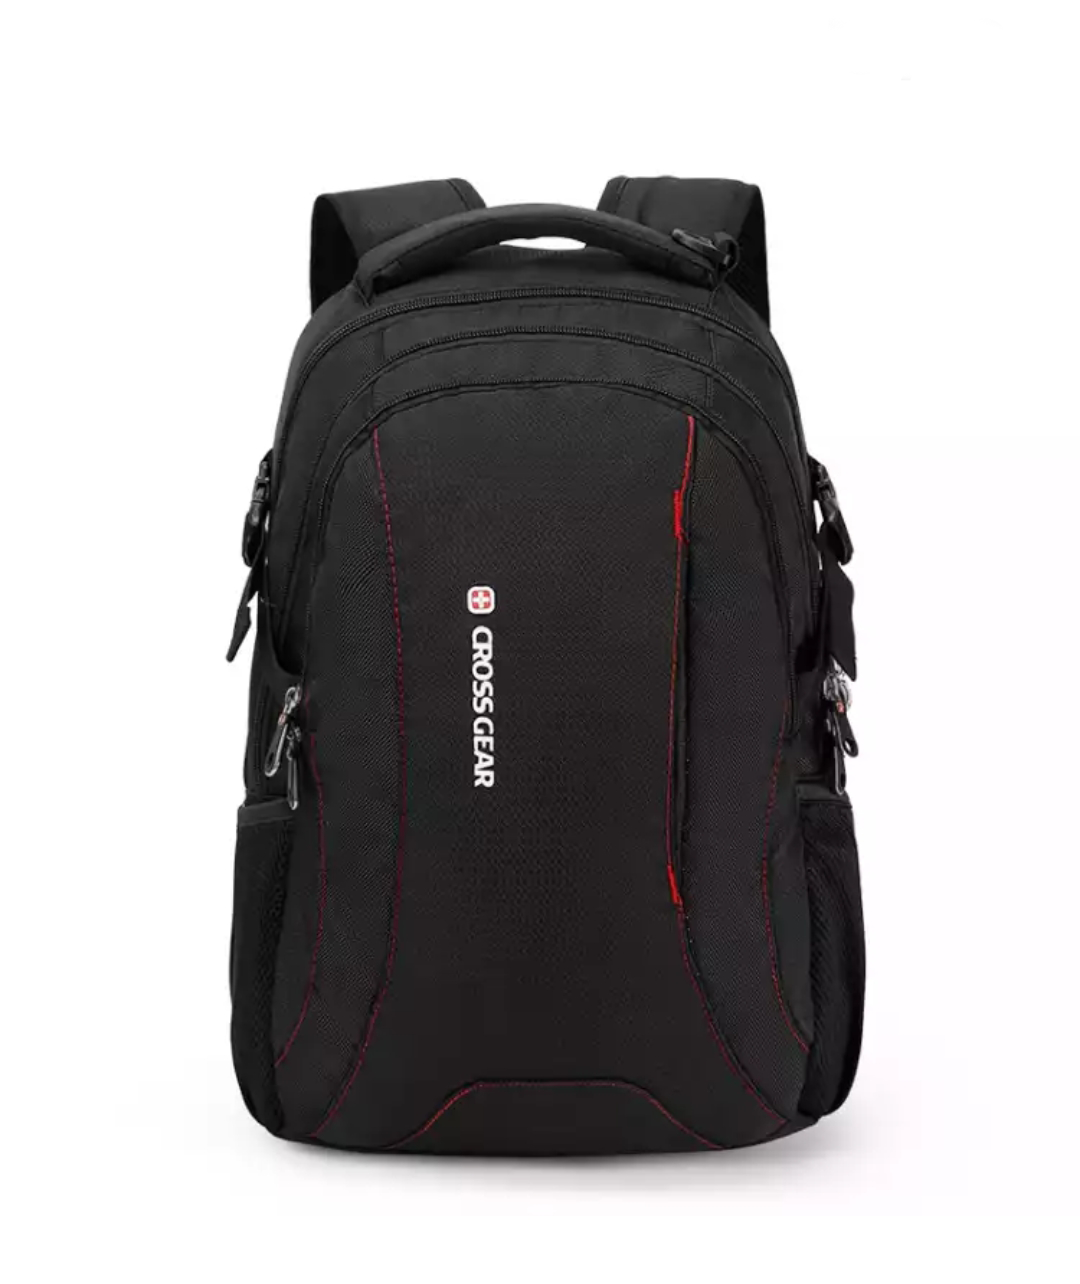 Functional and waterproof Swiss Gear Laptop Backpack